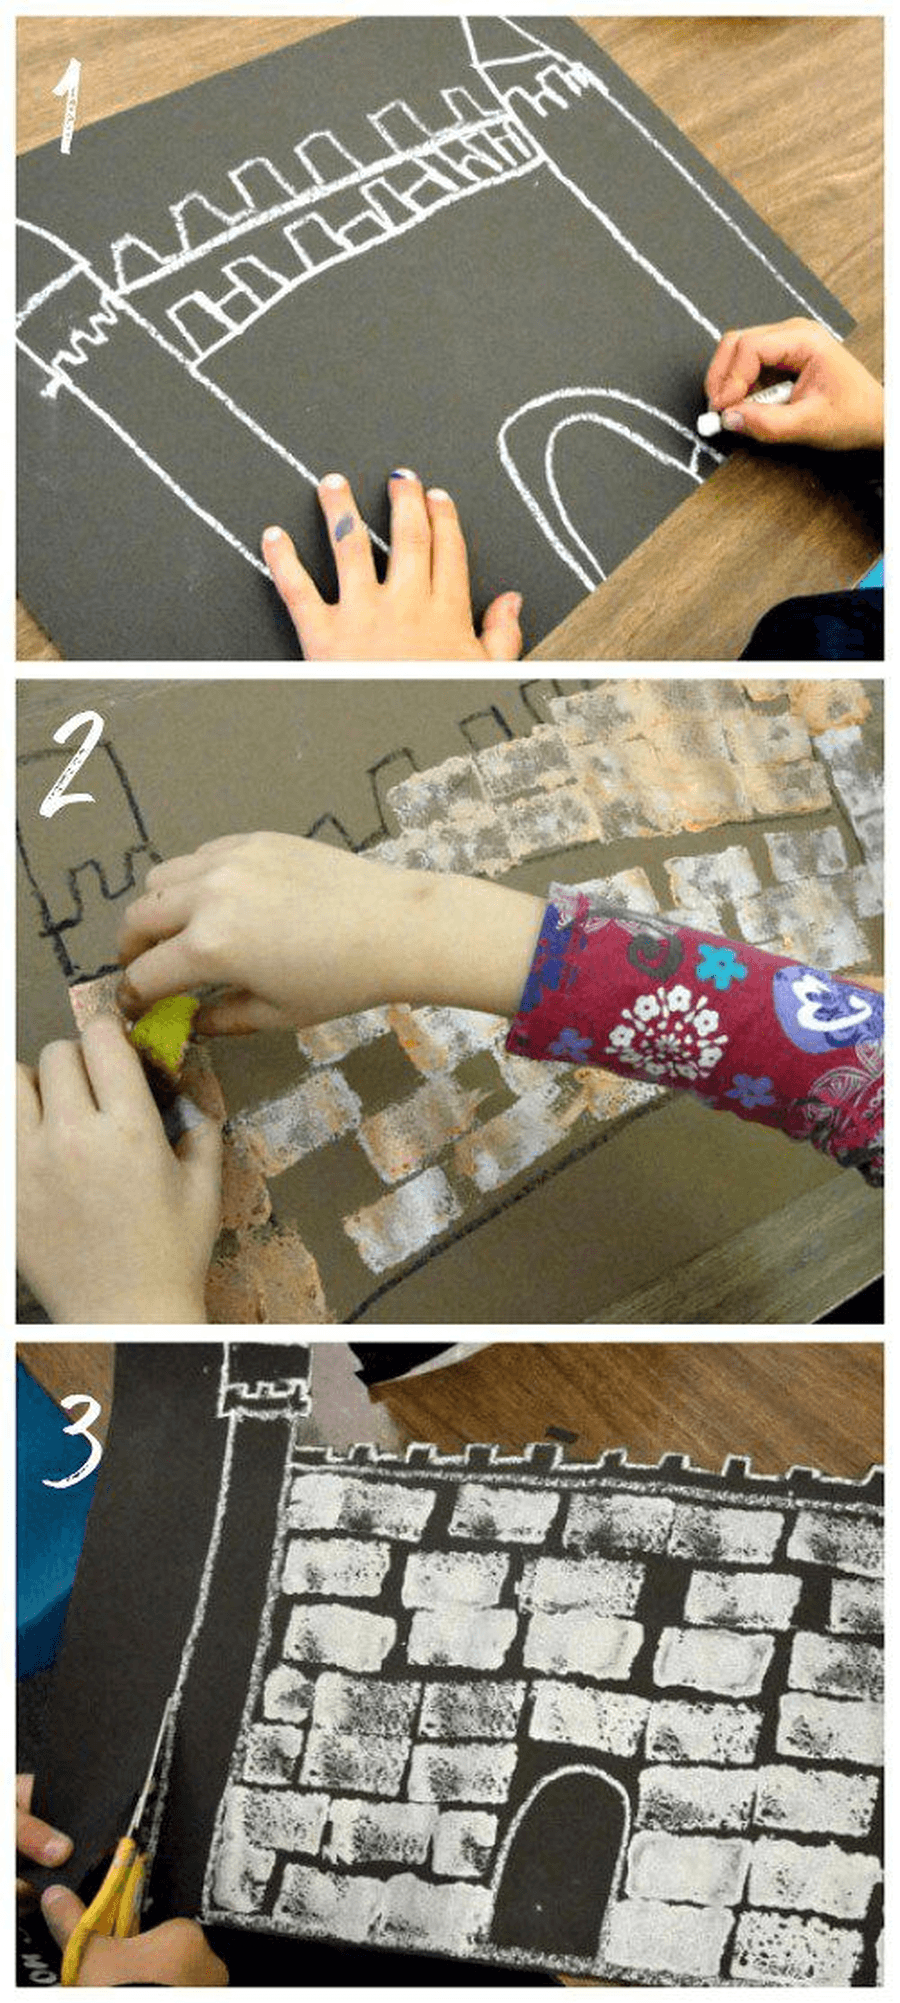 Make a castle picture using chalks, paints or pens for the giant to live in.